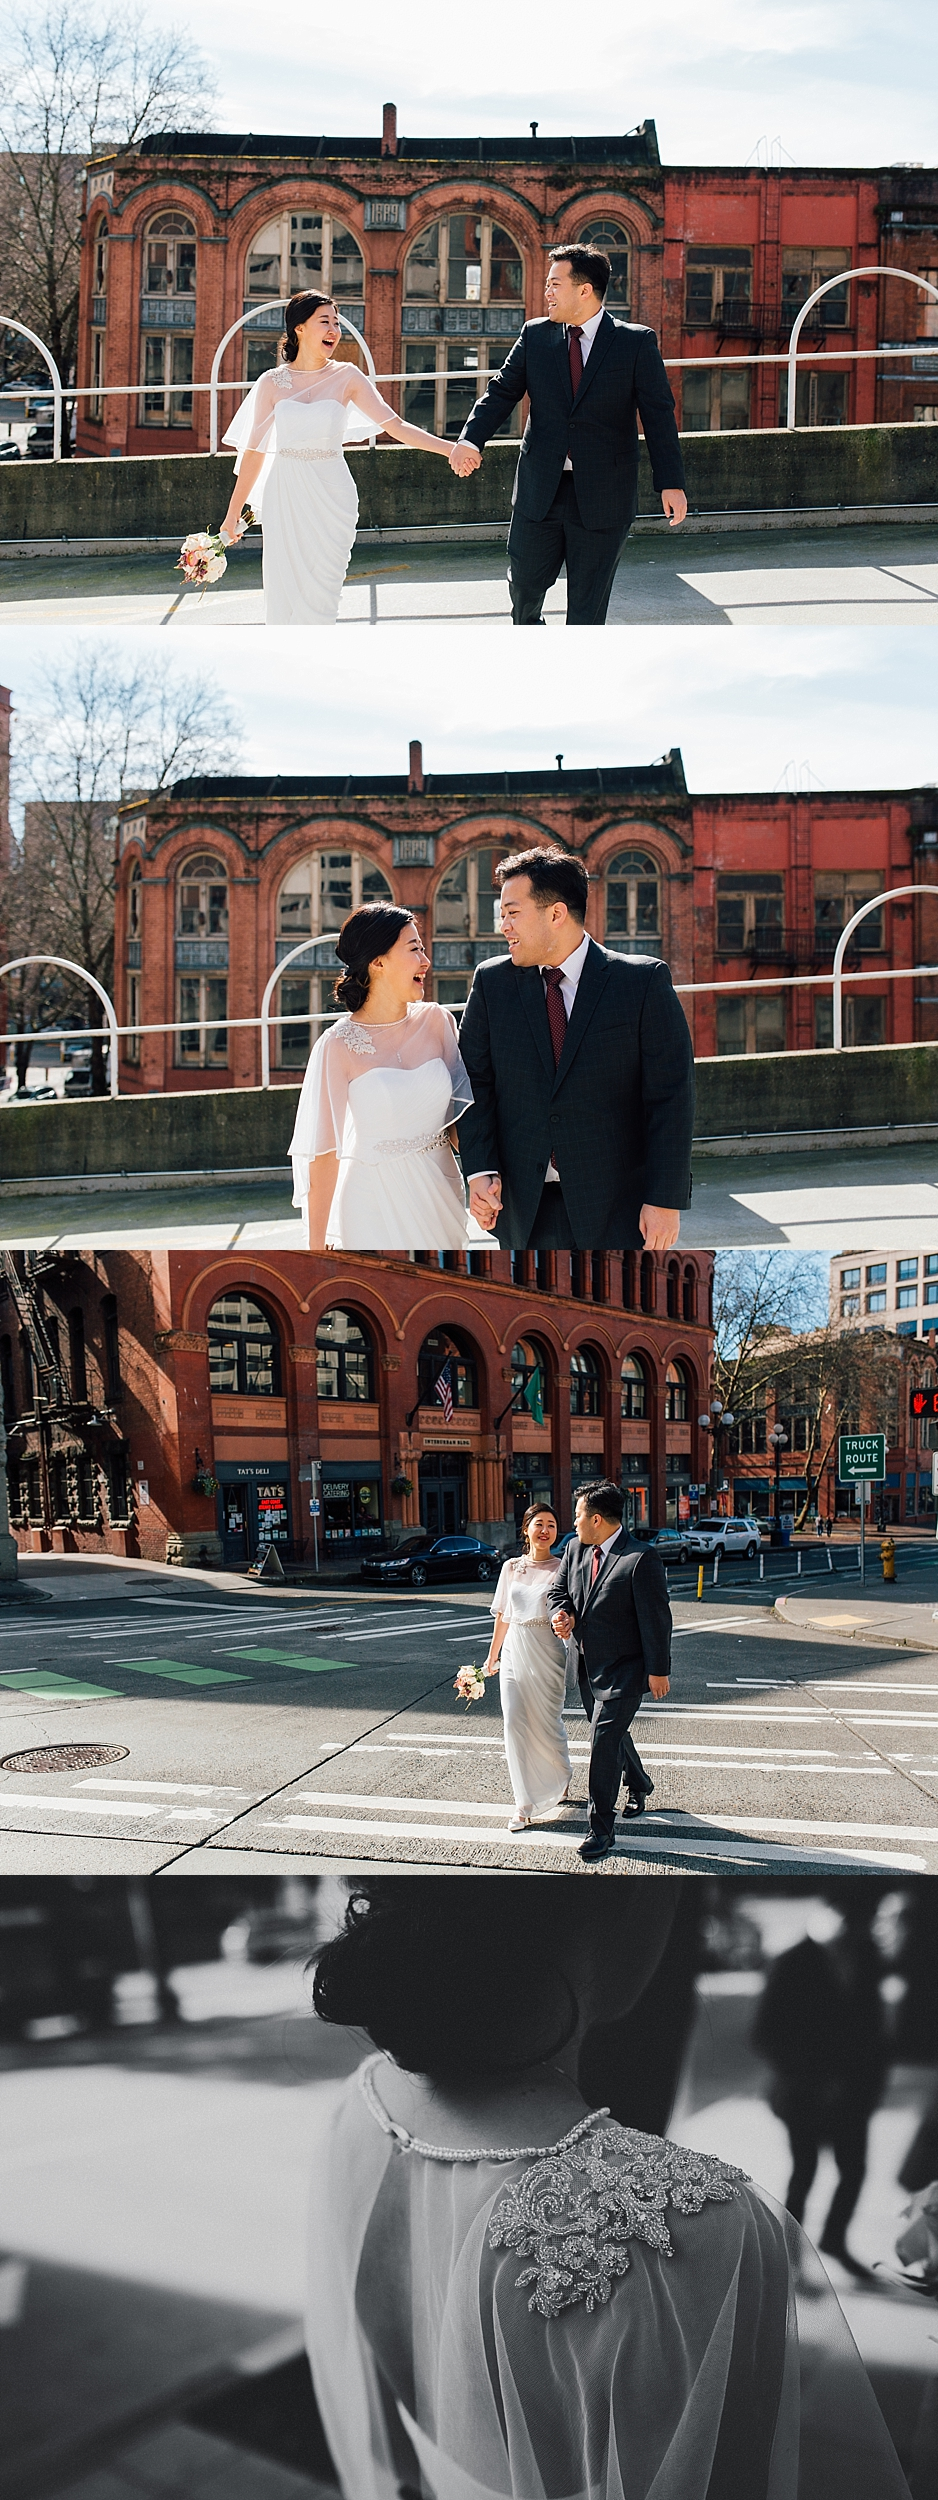 Seattle Courthouse Wedding Photographer PNW elopement Photography - Annie & Alan - Ashley Vos Photography-4.jpg